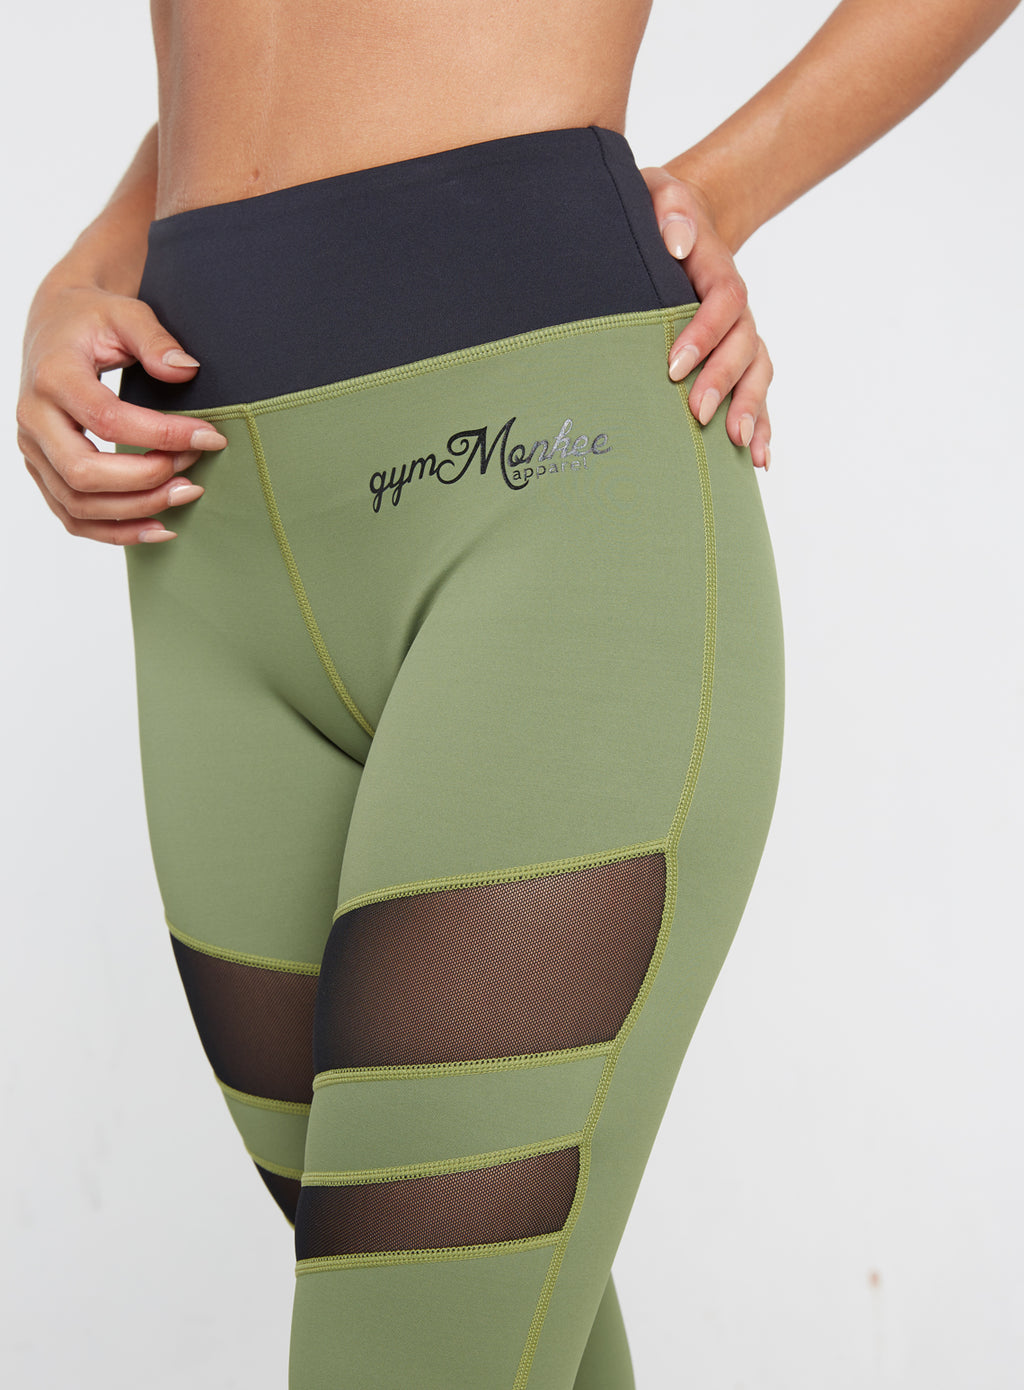 Gym Monkee - Ladies Black and Khaki Leggings FRONT CLOSEUP